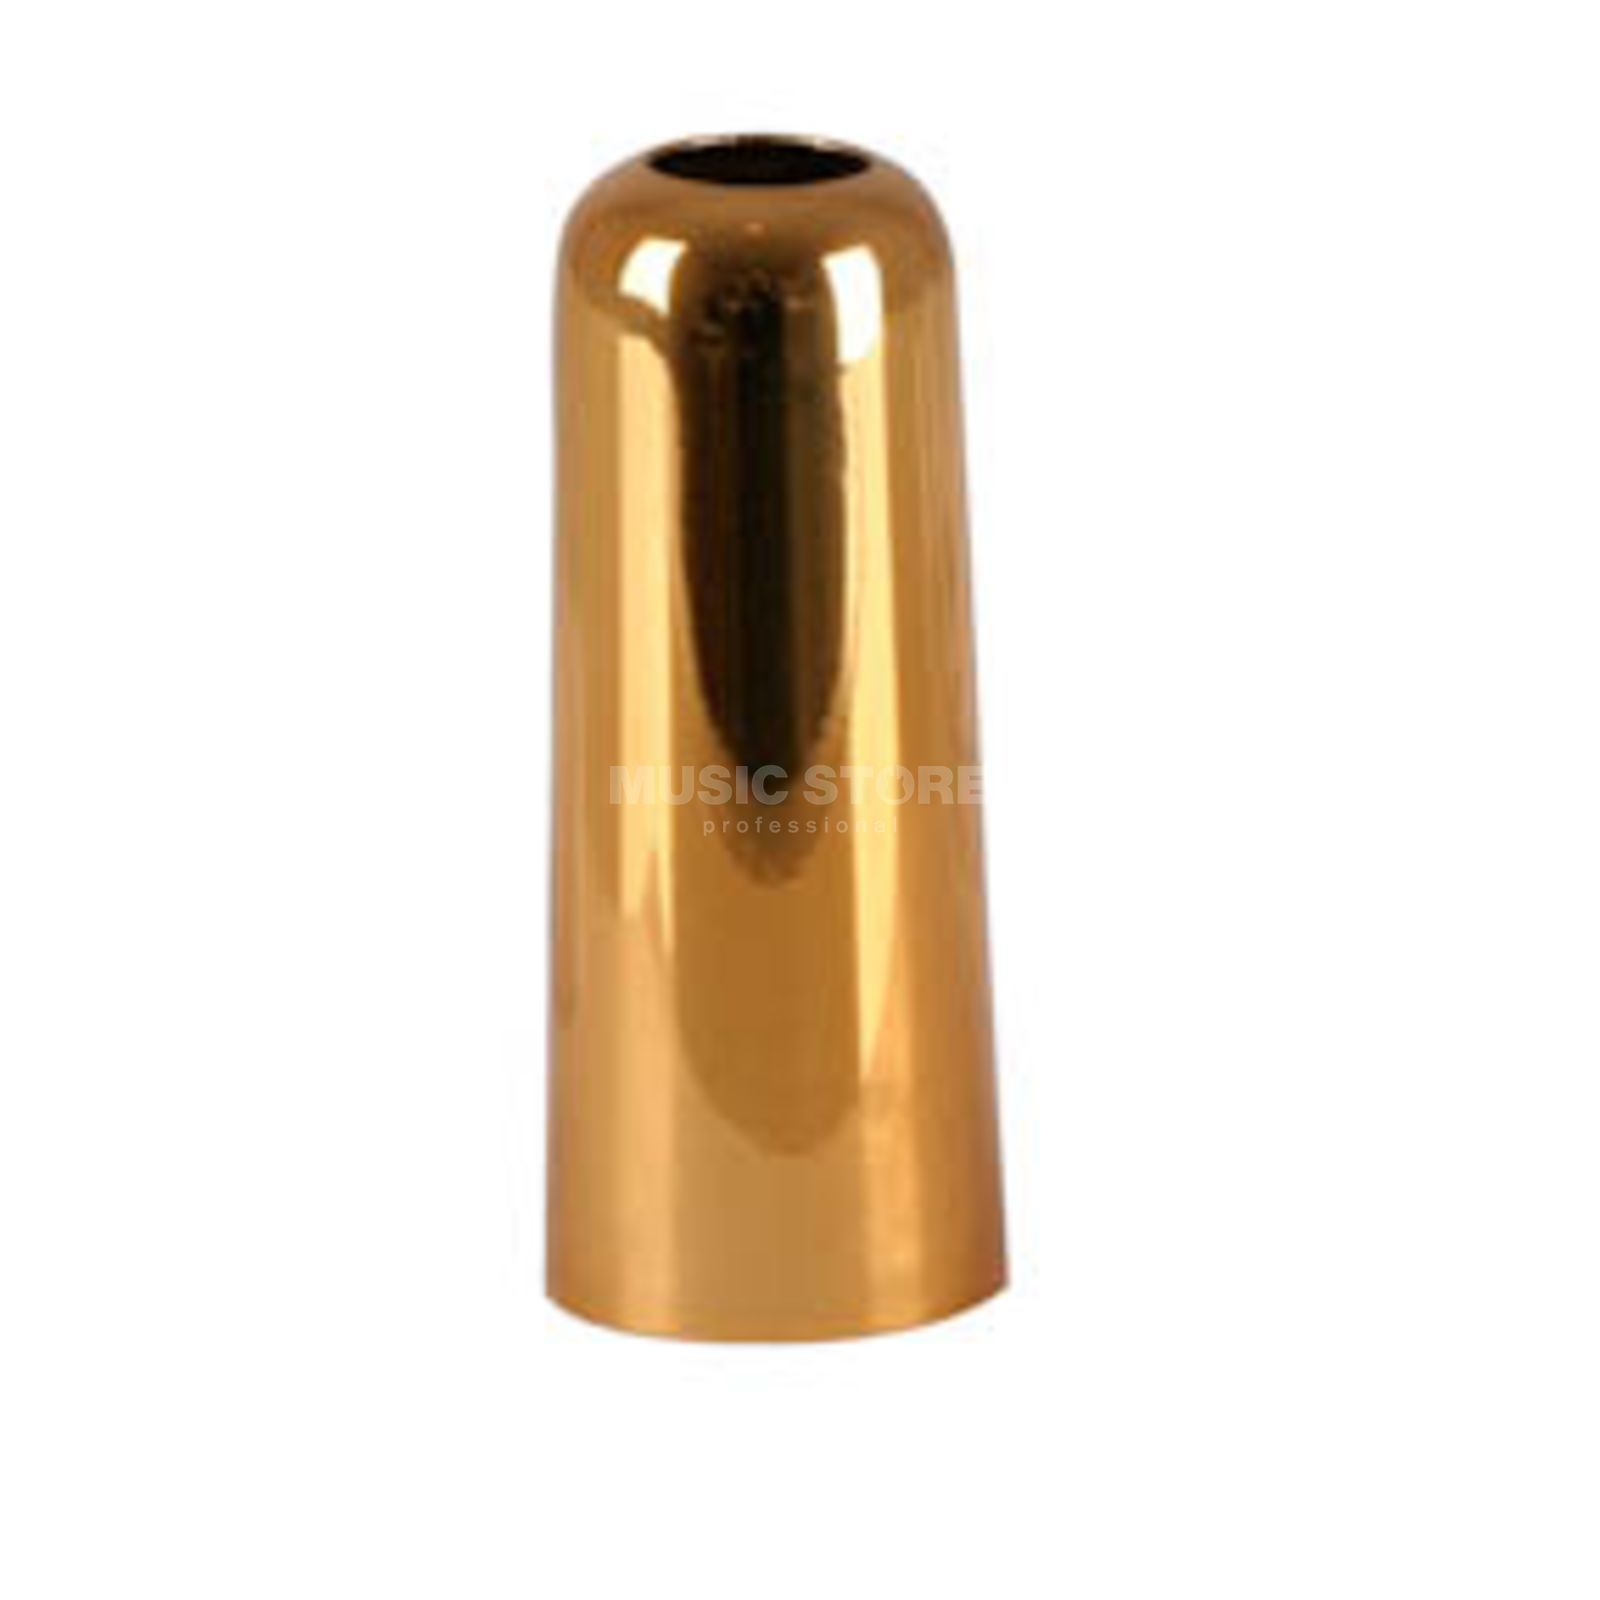 OTTO LINK Capsule for Alto / Tenor Saxophone Mouth-Piece Product Image